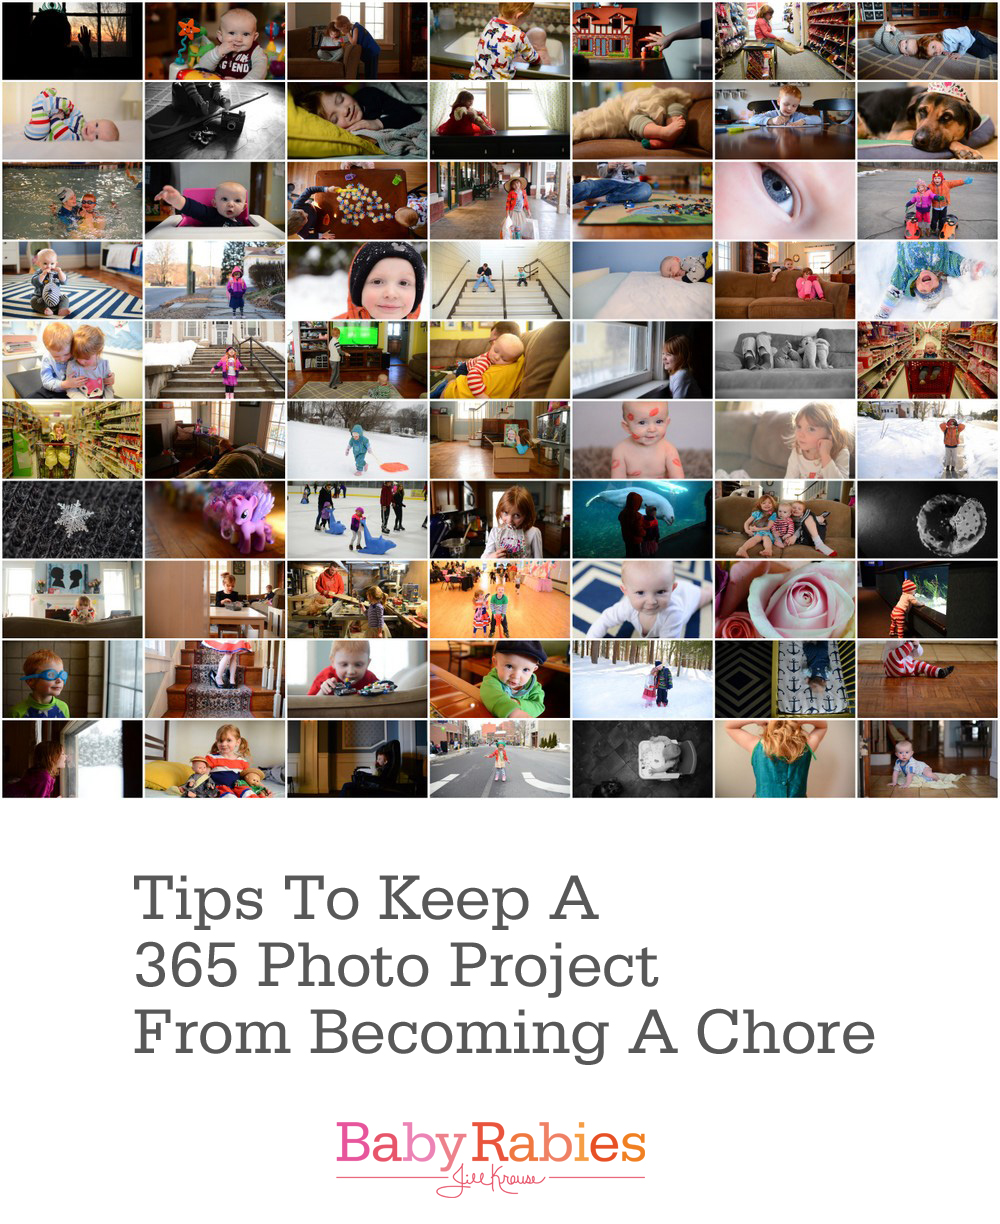 Tips To Keep a 365 Photo Project From Becoming A Chore {Contributor}